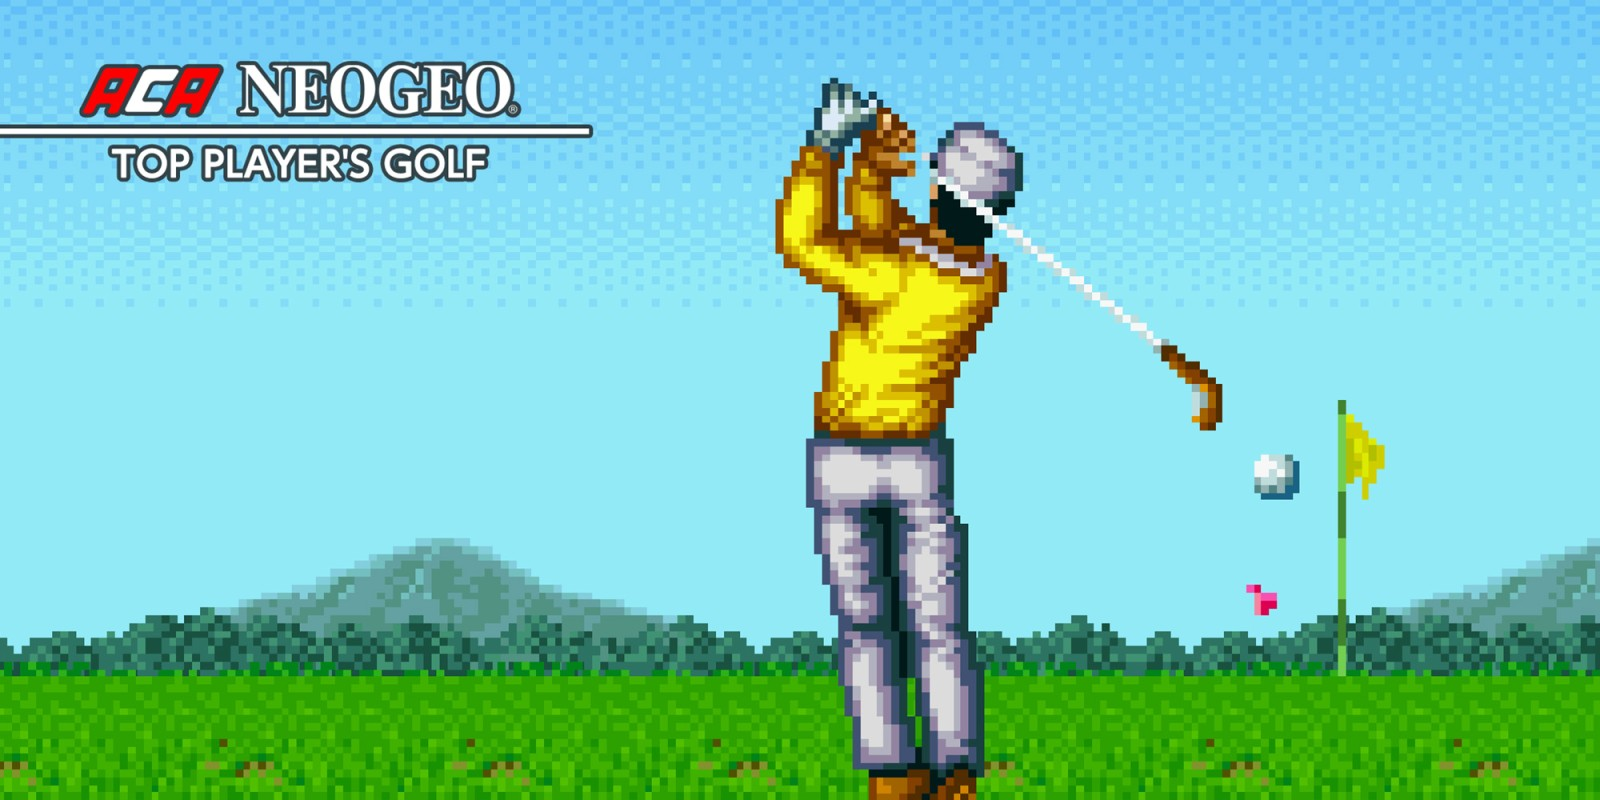 ACA NEOGEO TOP PLAYER'S GOLF